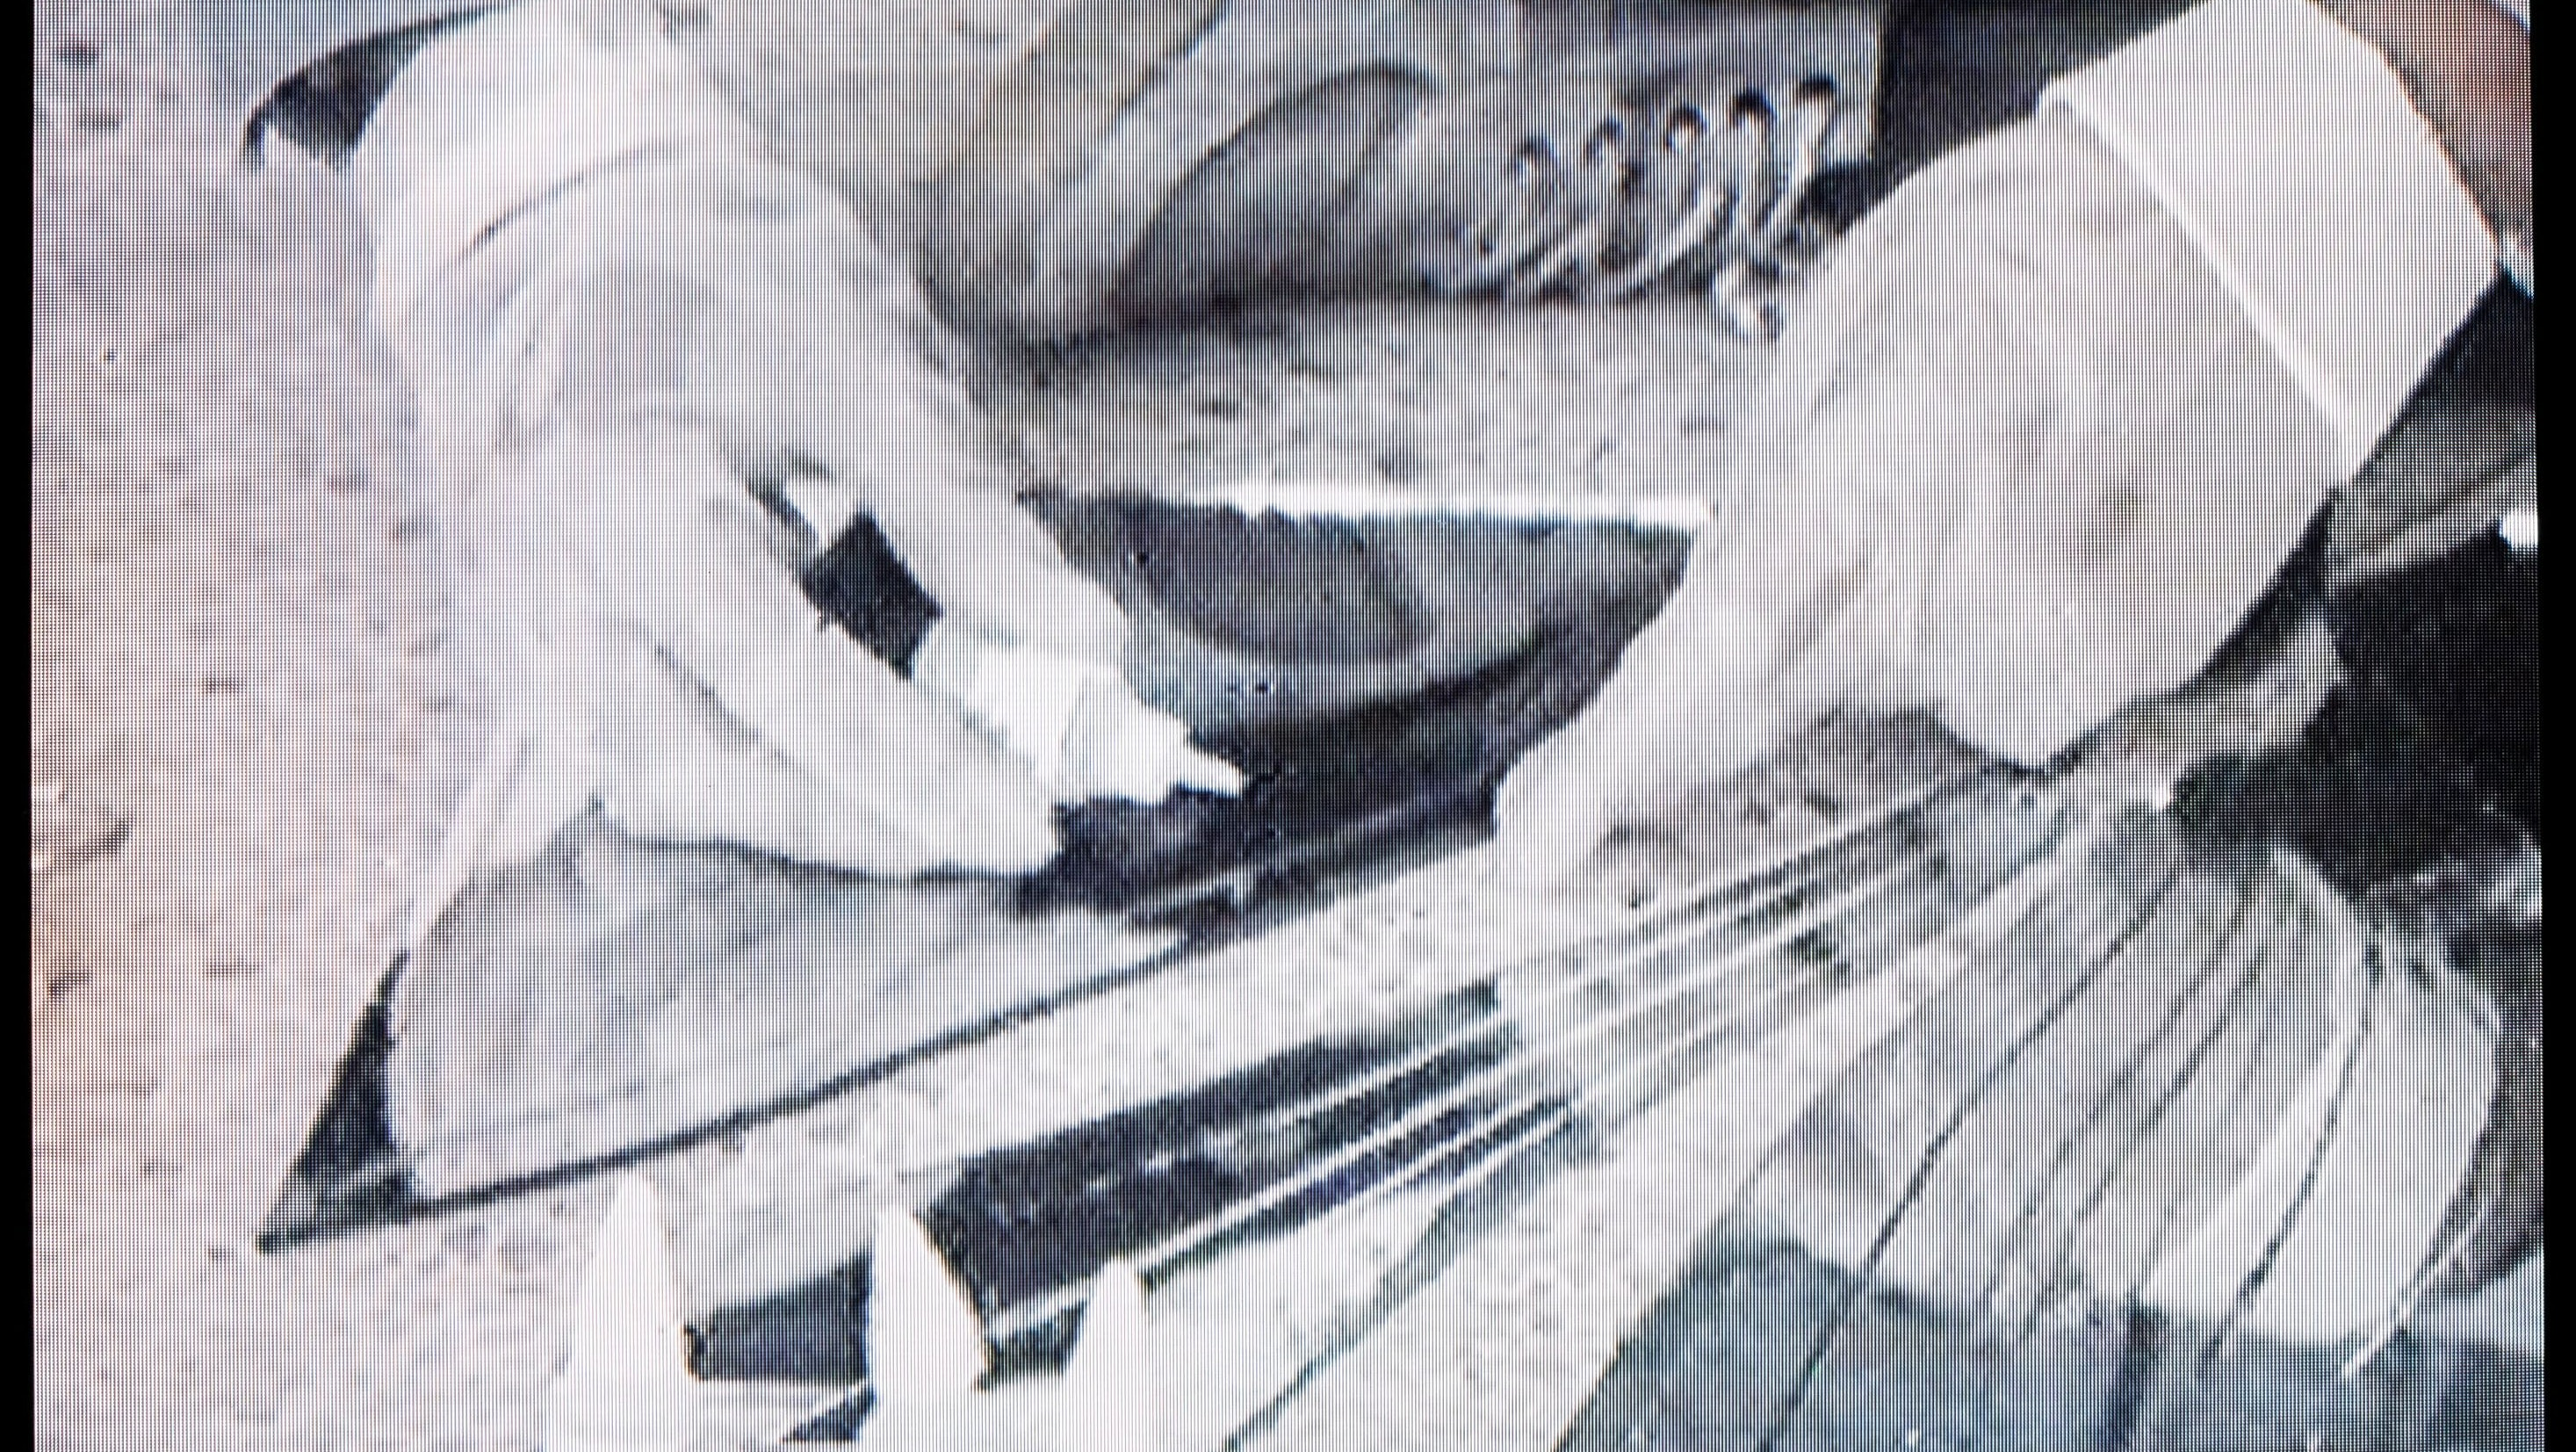 A still from a film that shows a close up of a person's hands as they glue a mirror together.